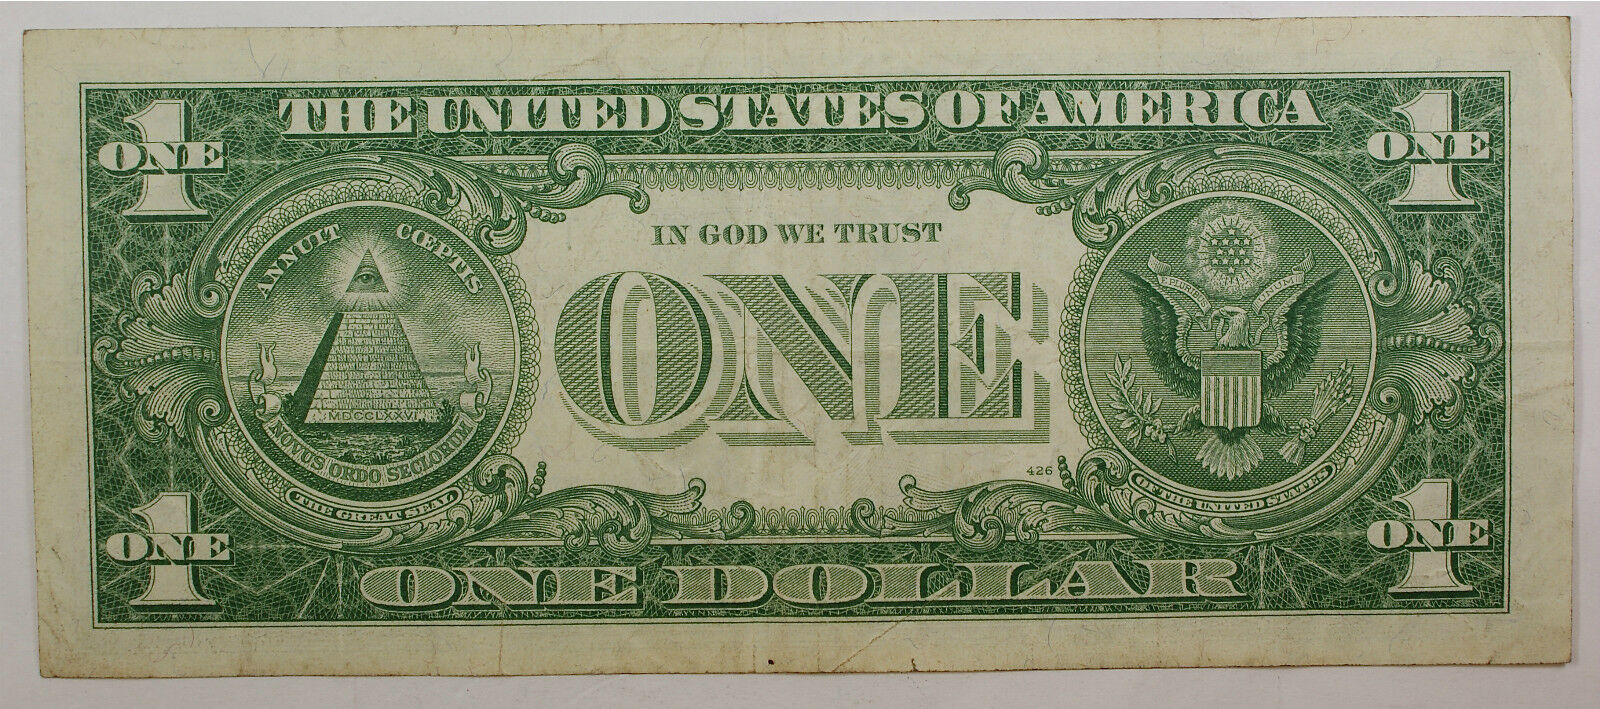 1957 one dollar silver certificate notes vg vf old us ebay picture 1 of 2 picture 2 of 2 xflitez Images